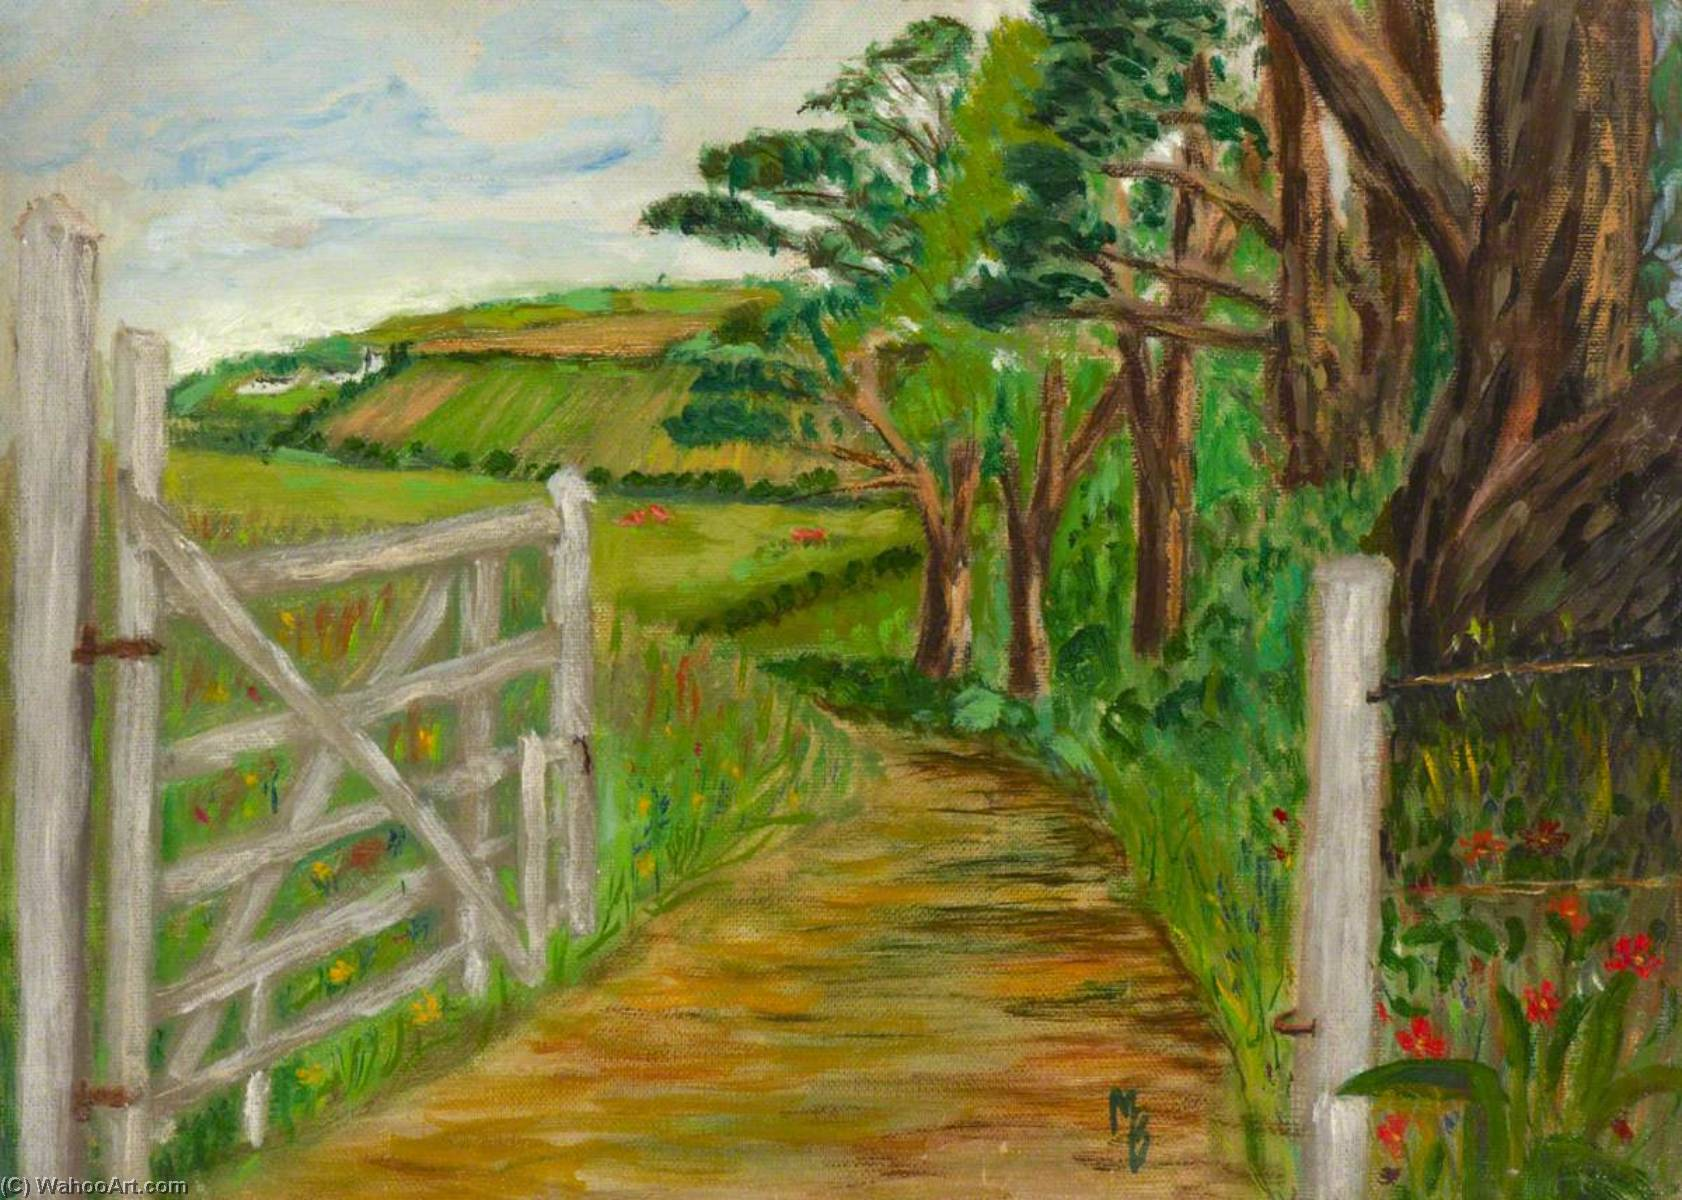 The Back Exit from the Grounds, Oil by Myfanwy Baker